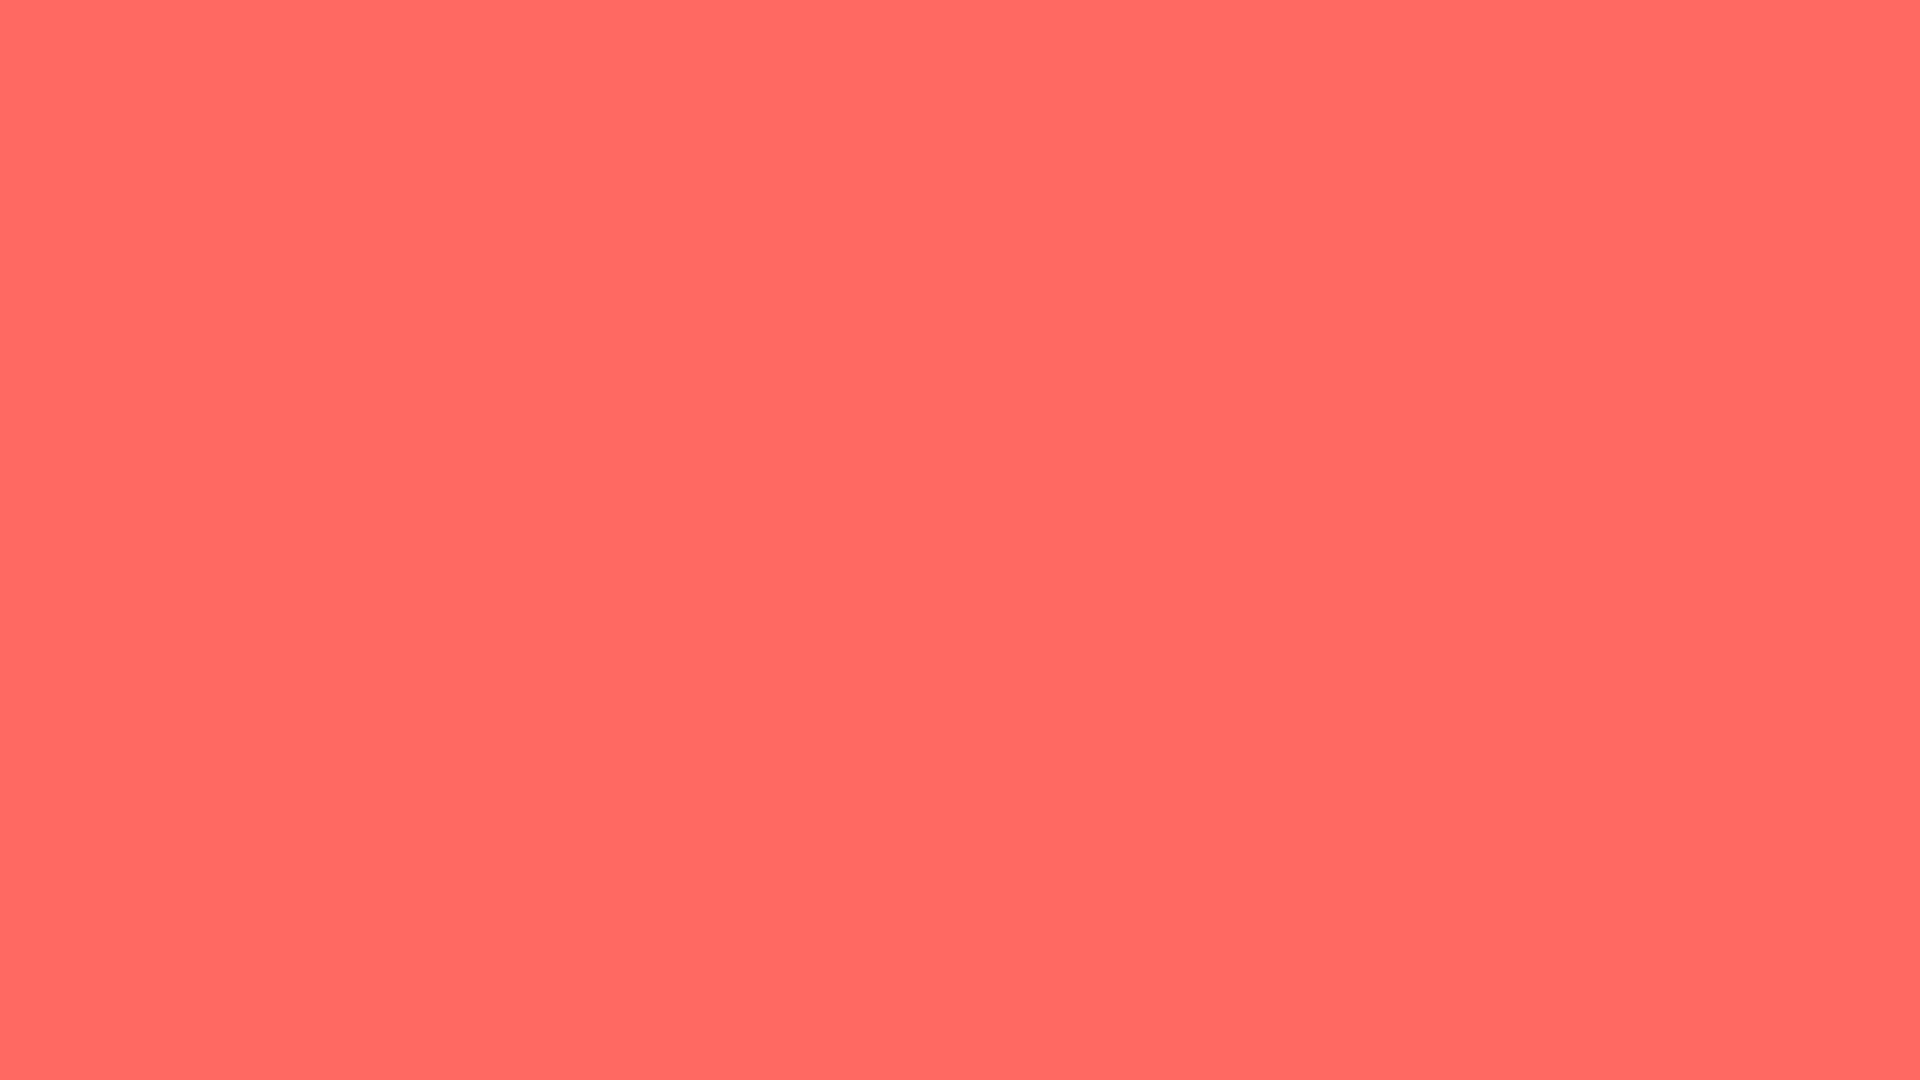 1920x1080 Pastel Red Solid Color Background